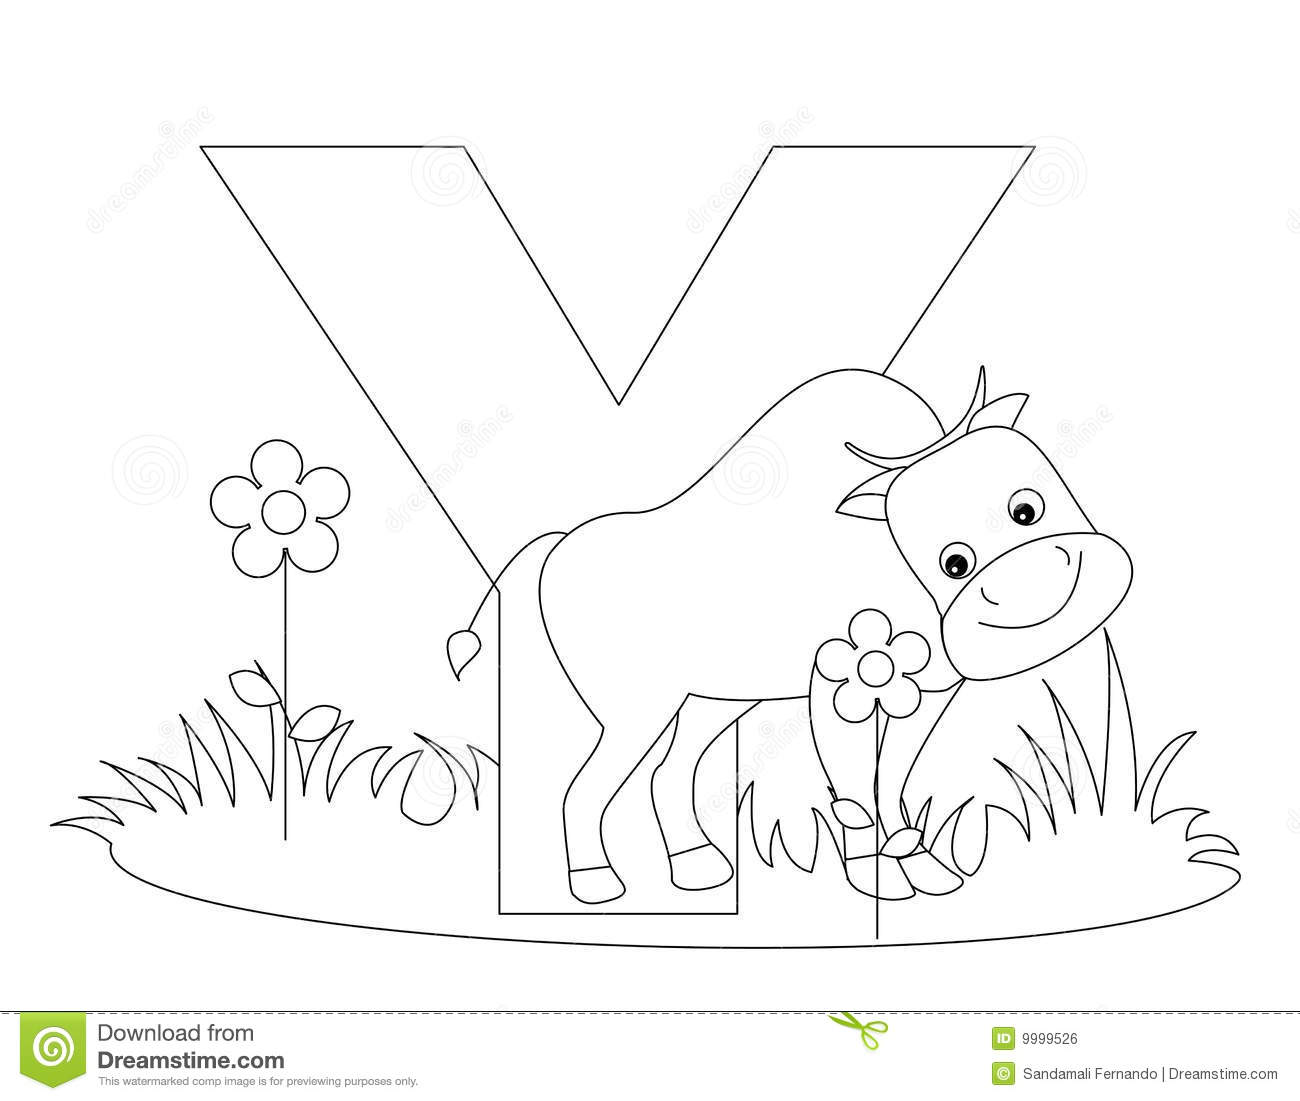 Letter Y Coloring Pages: Animal Alphabet Y Coloring Page Royalty Free Stock Image